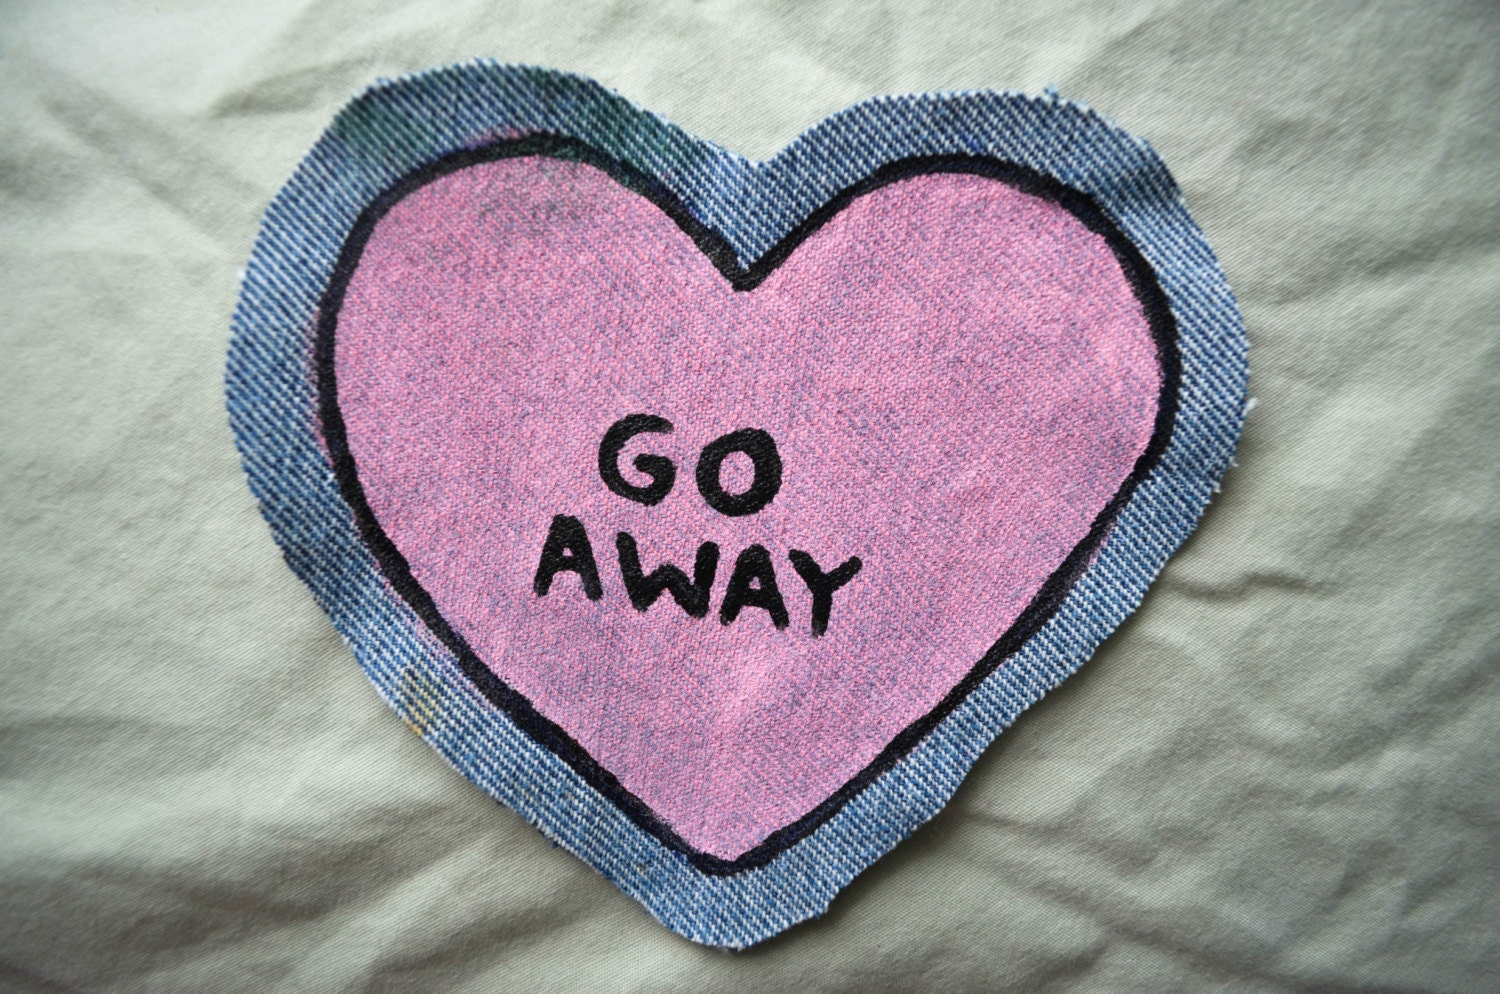 pink heart GO AWAY patch on denim